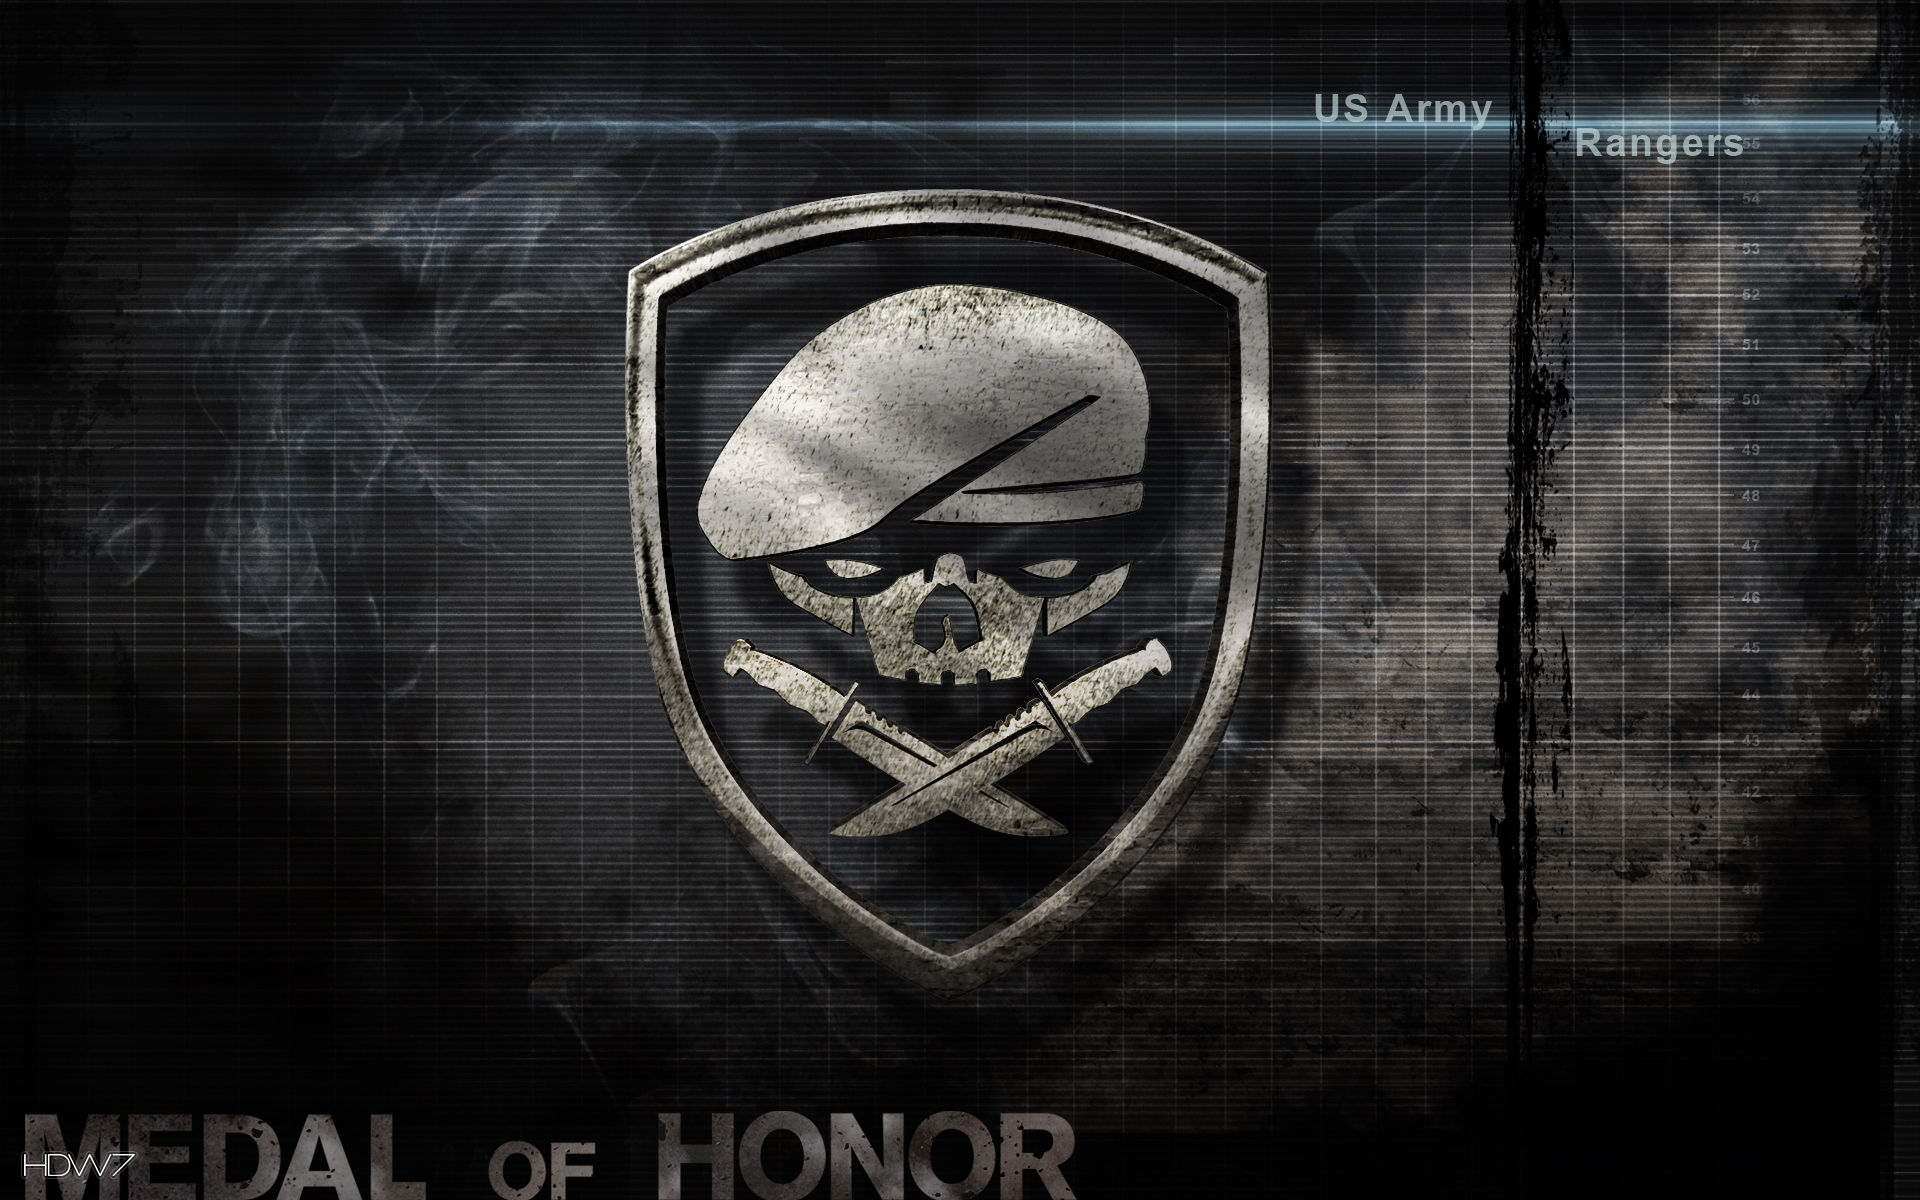 Medal of honor us army rangers widescreen wallpaper hd wallpaper medal of honor us army rangers widescreen wallpaper voltagebd Image collections